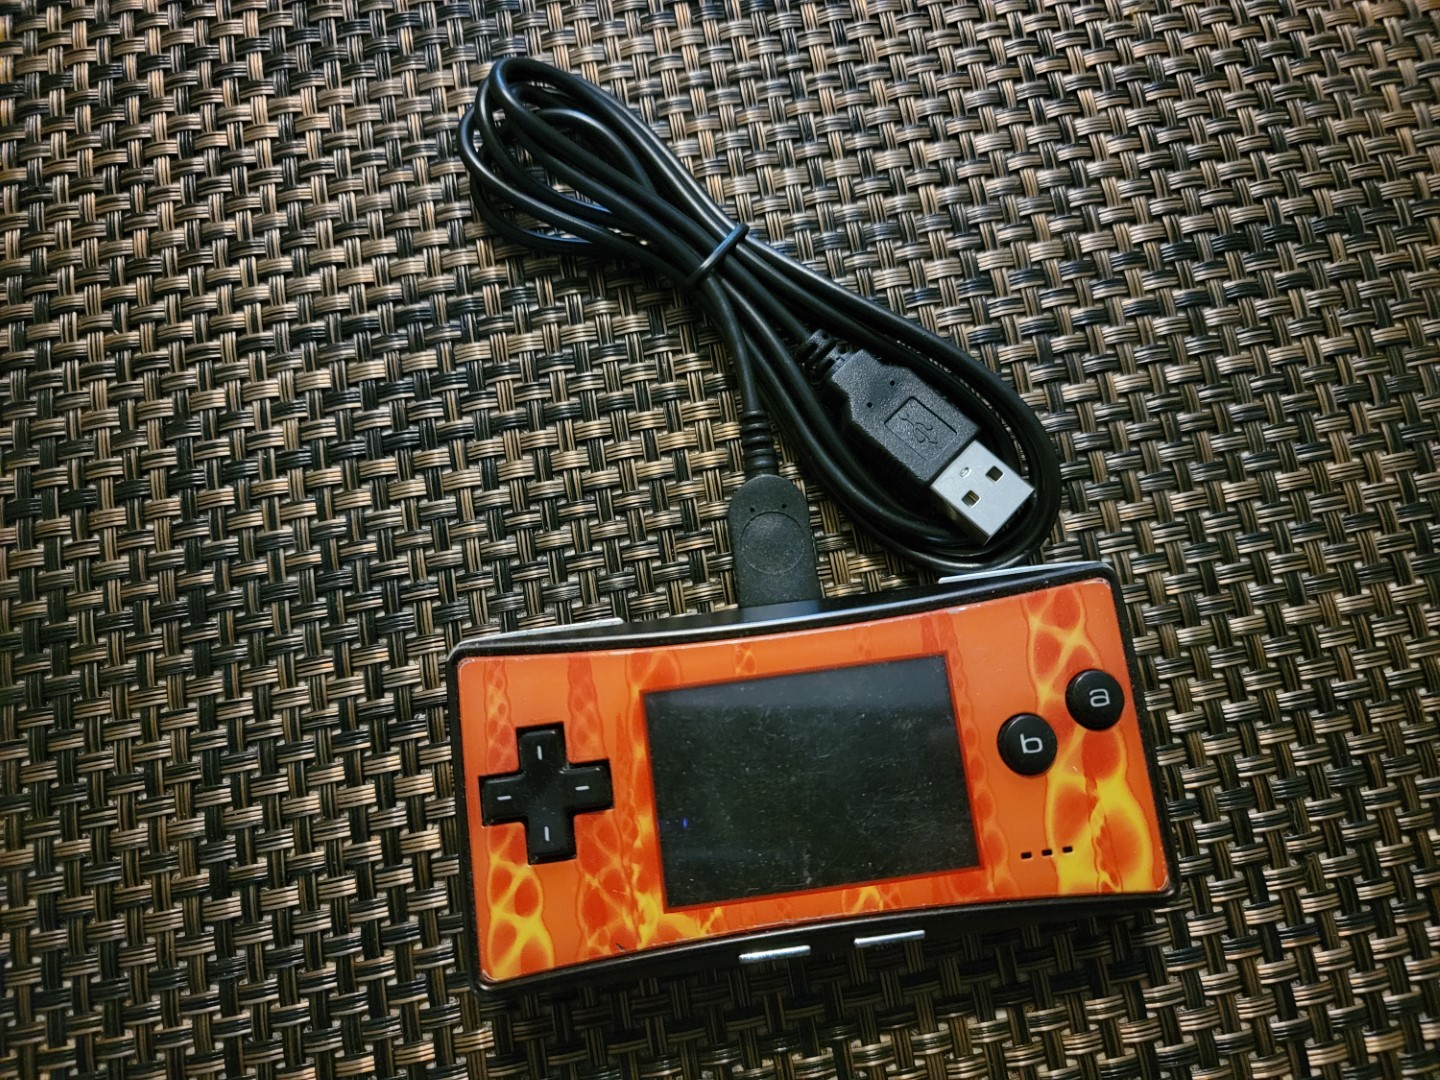 Cuziss USB Power Supply Charger Cable Cord Compatible for Nintendo GBM Game Boy Micro Console 3